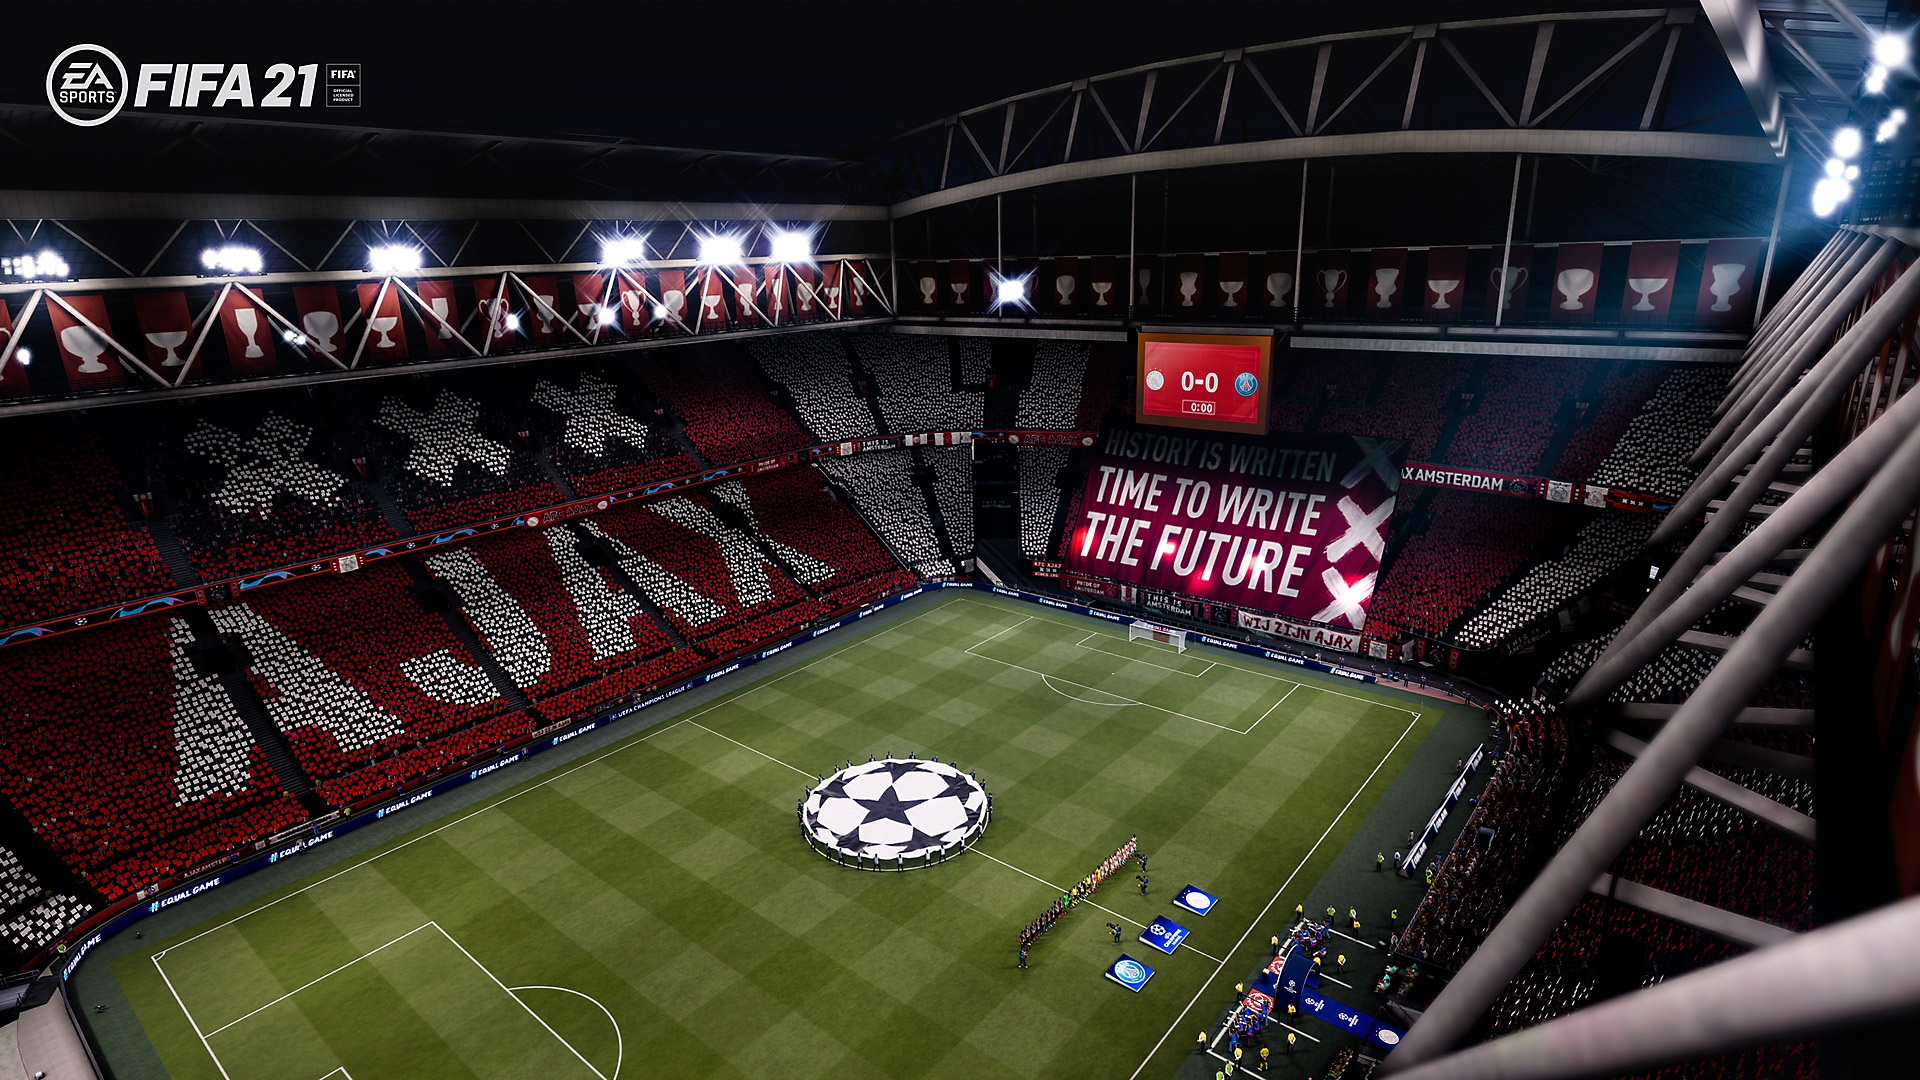 FIFA 21 reveal screenshot